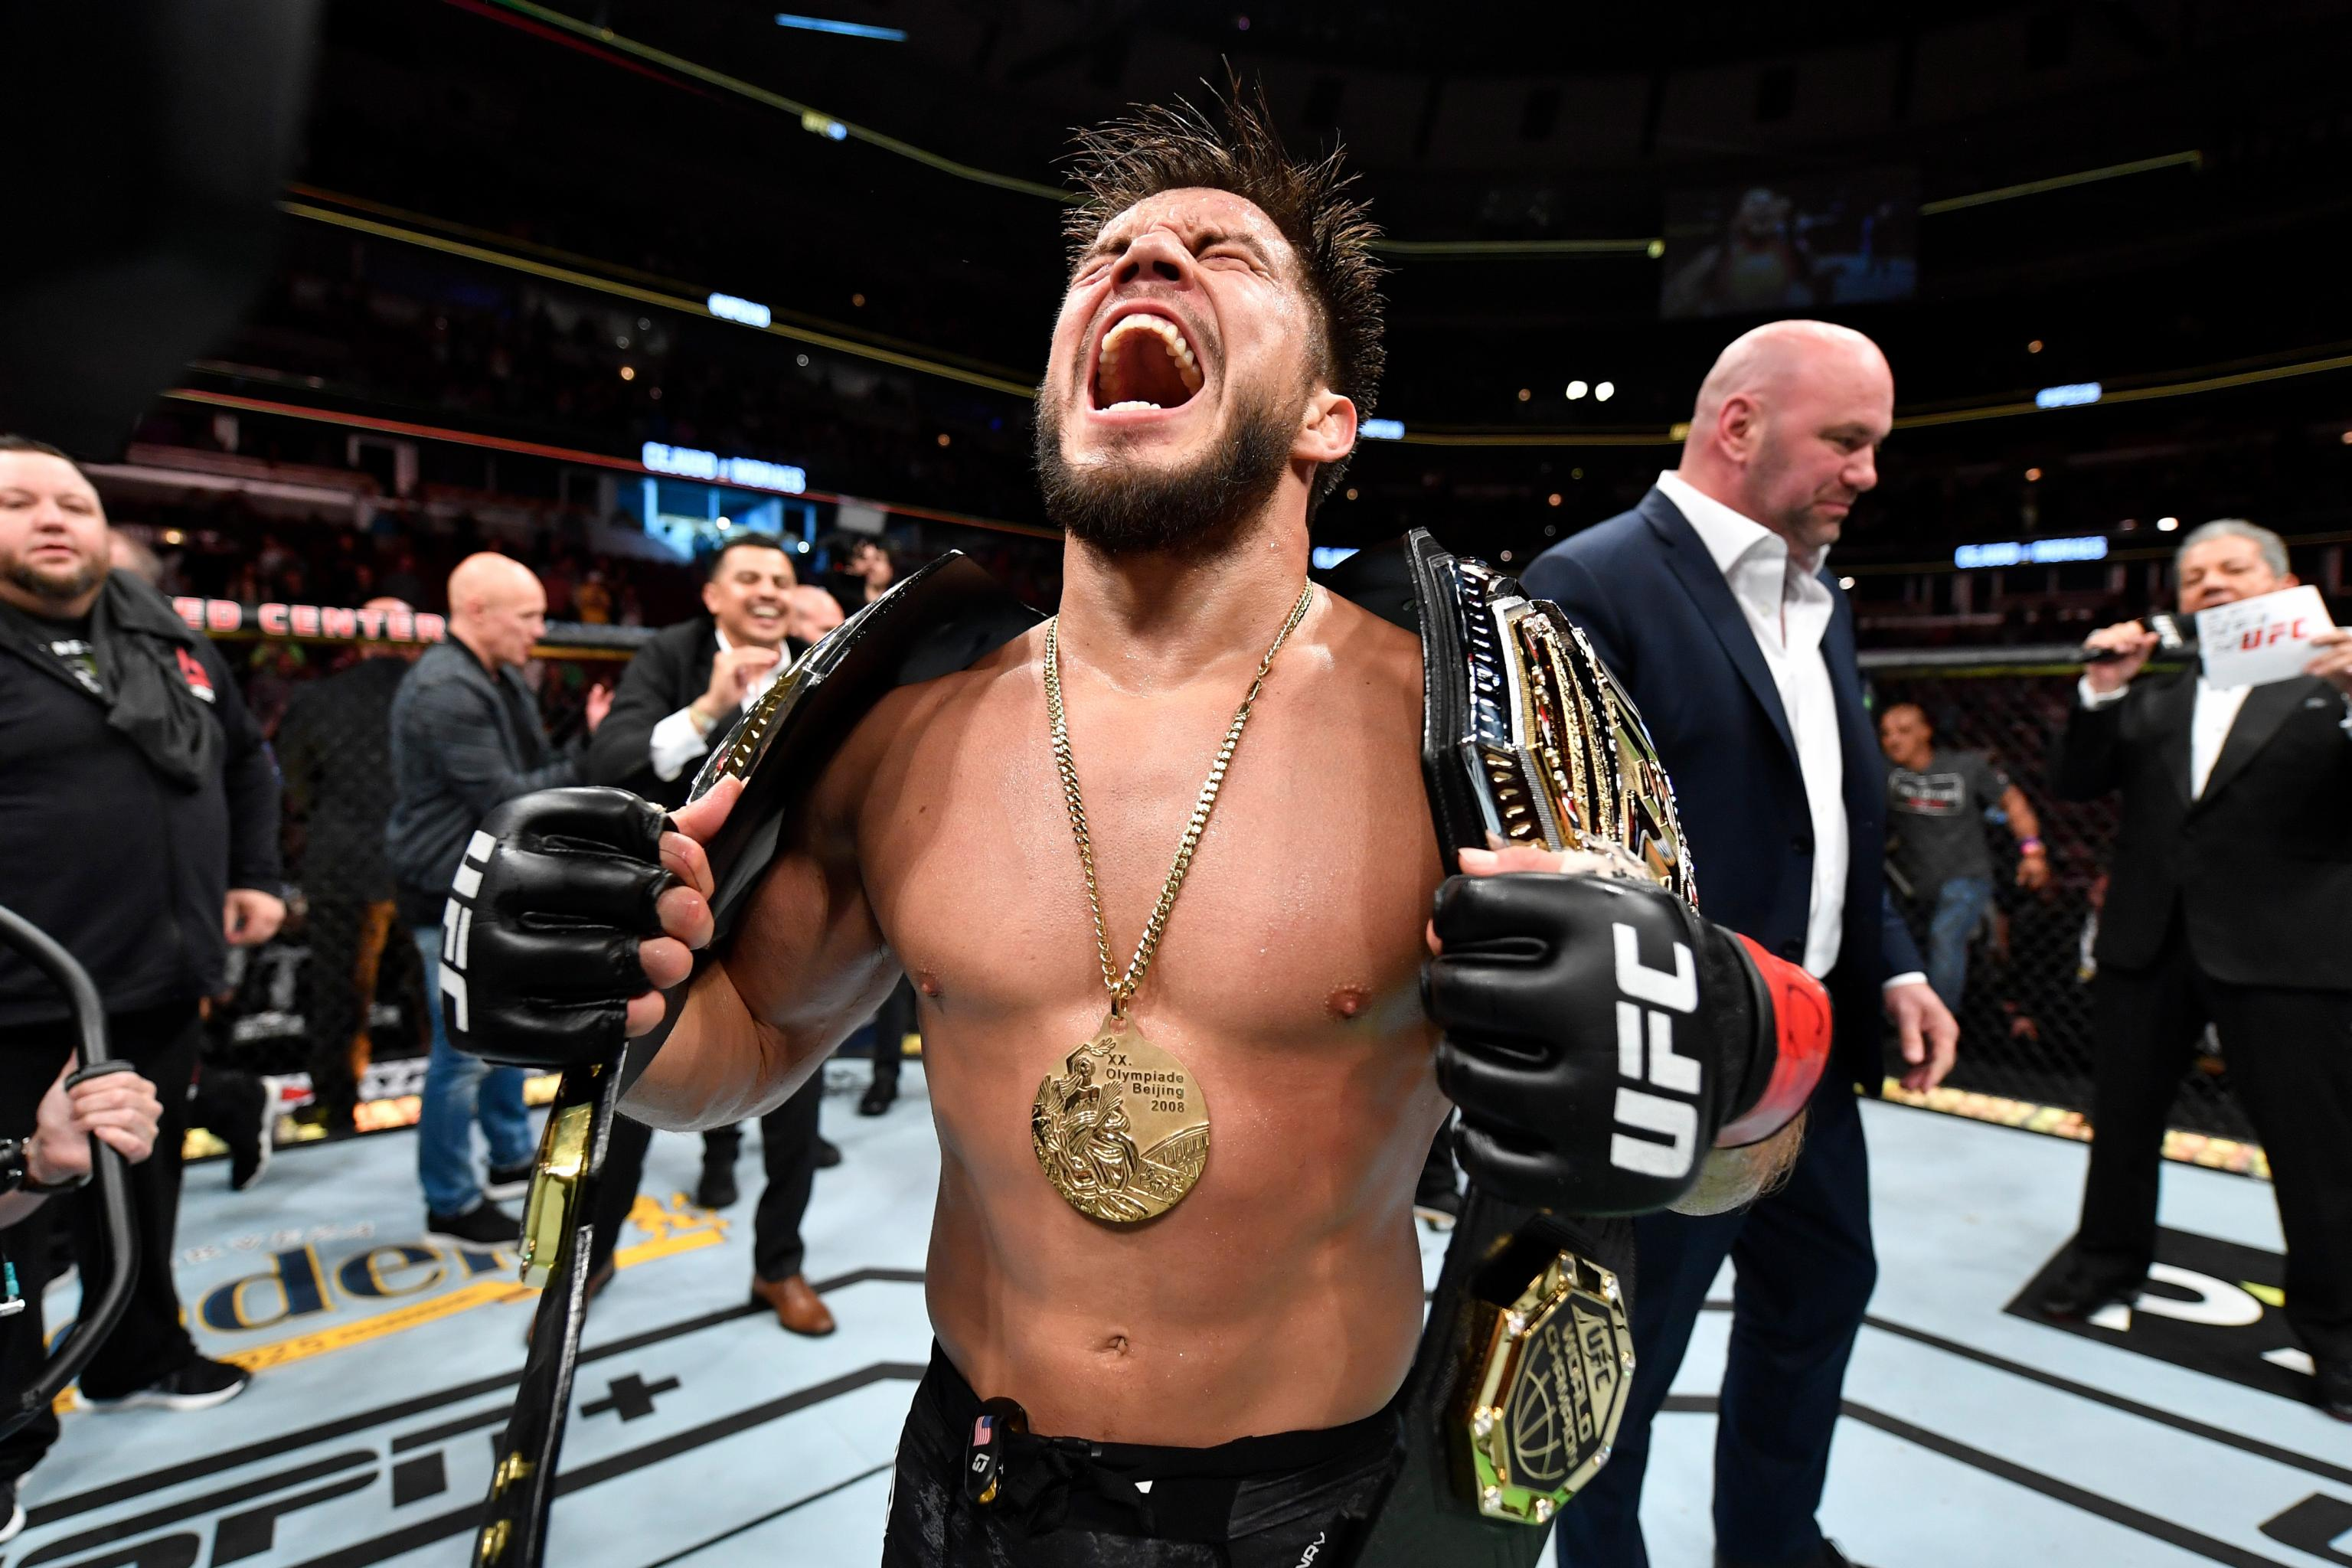 Henry Cejudo Is Ufc S Strangest Superstar After Becoming 2 Division Champion Bleacher Report Latest News Videos And Highlights